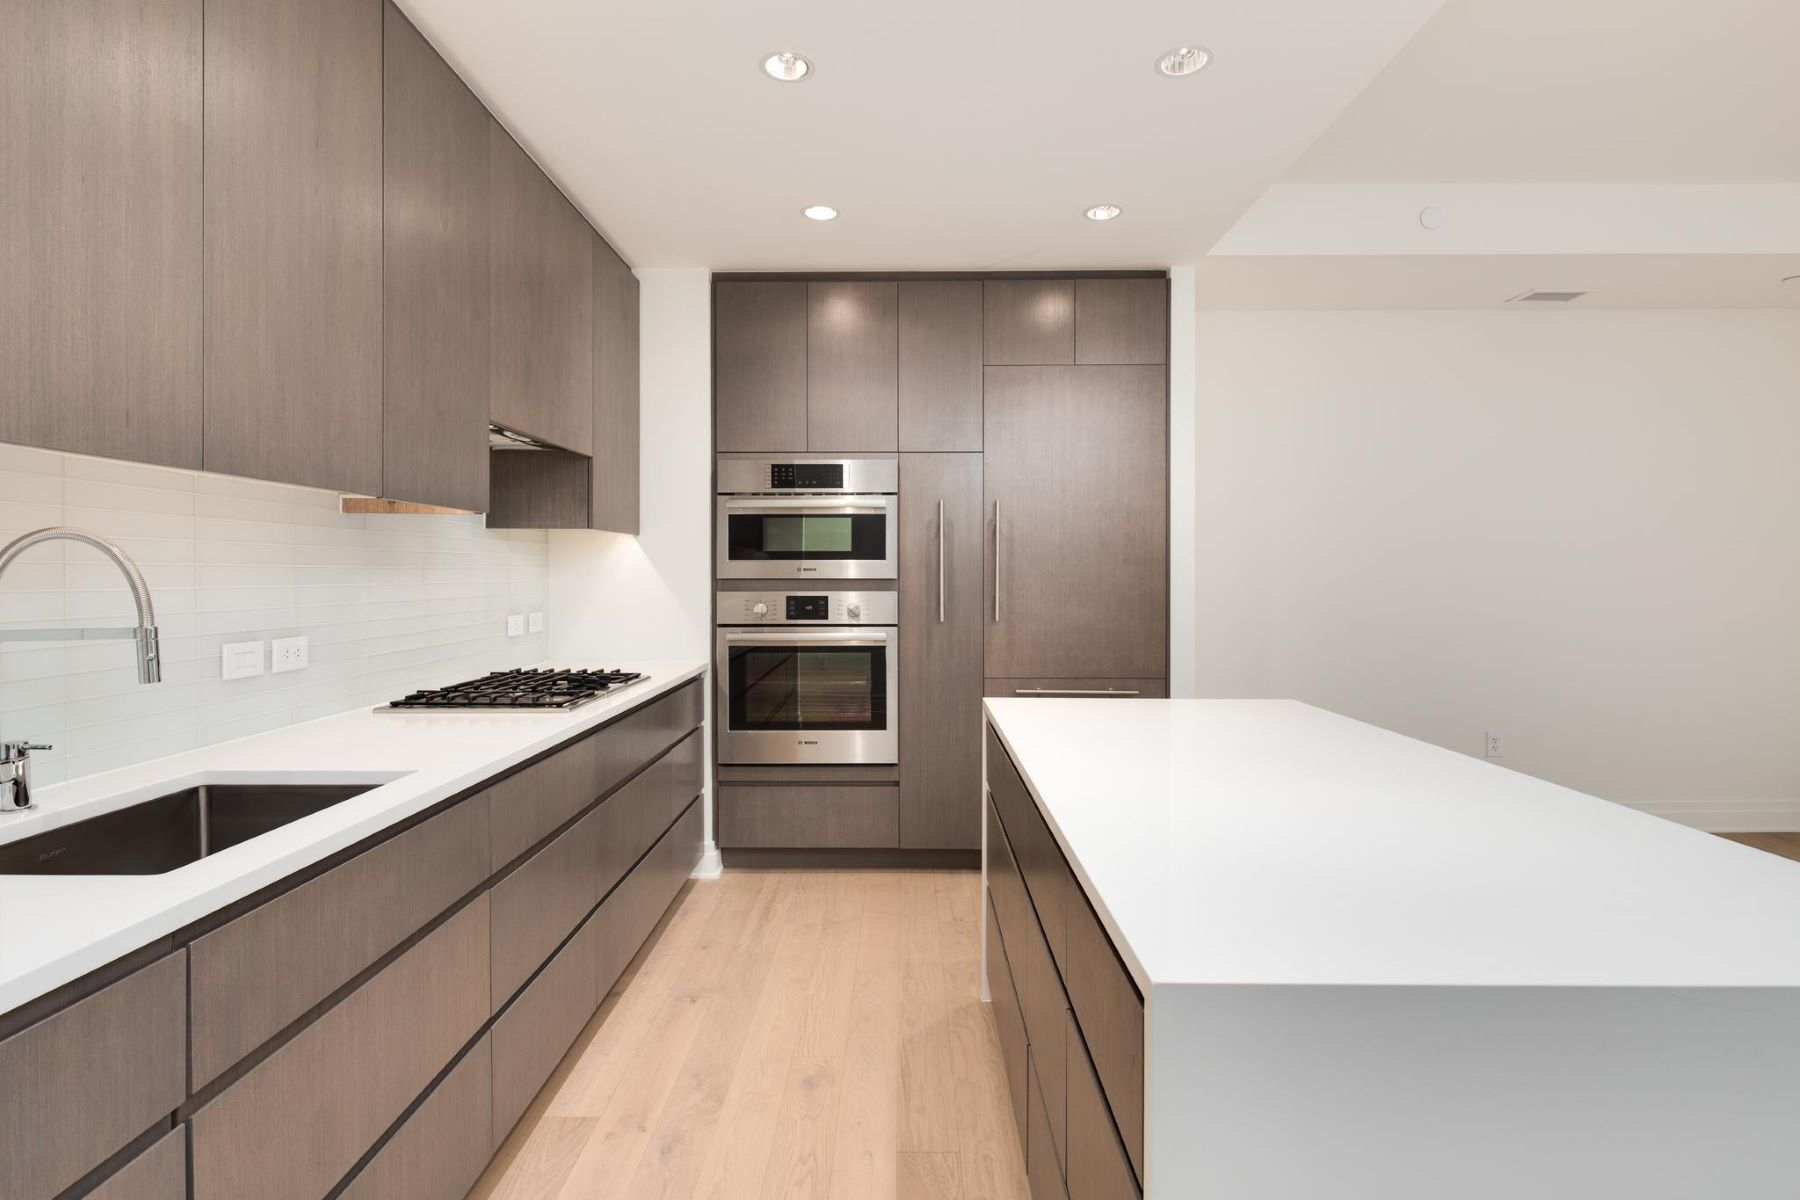 Condominium for Rent at 2501 M Nw #504 2501 M Nw #504 Washington, District Of Columbia 20037 United States